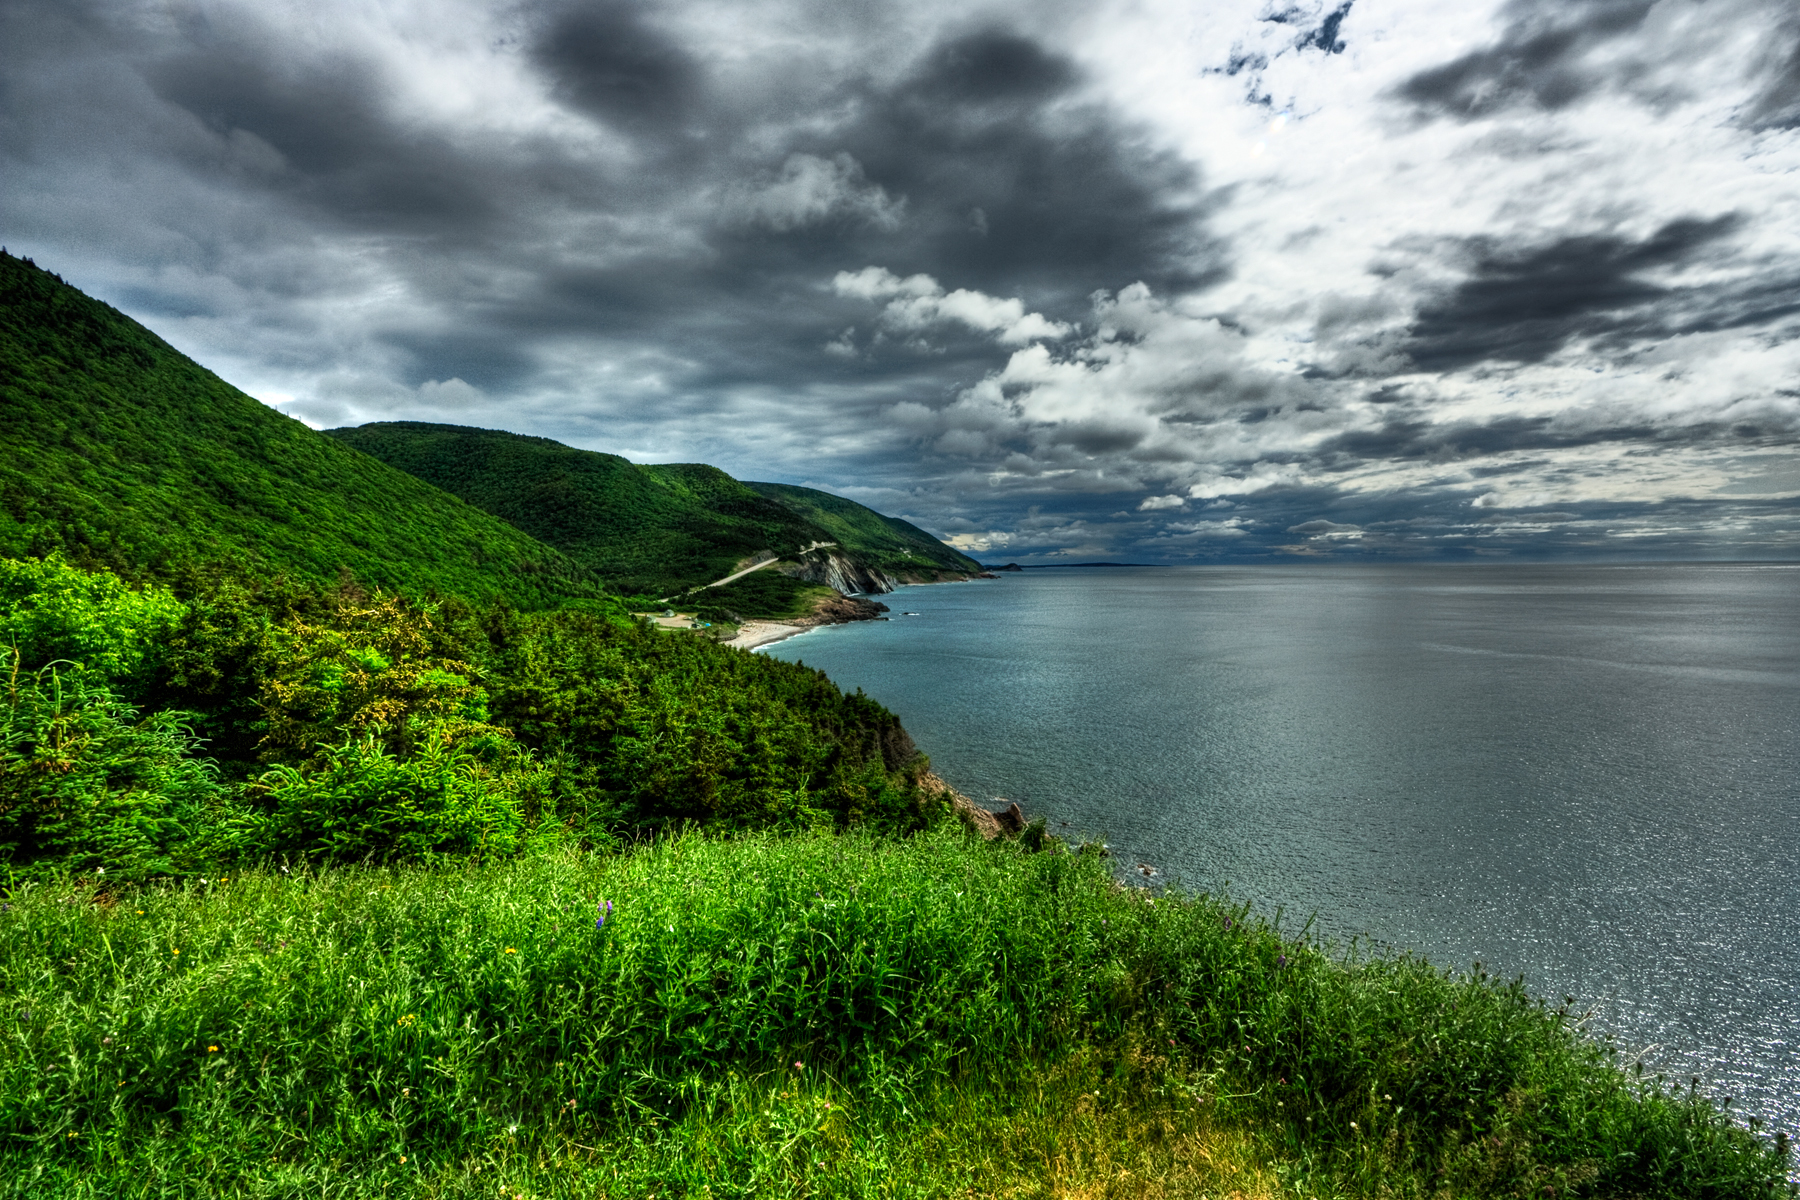 Cabot trail scenery - hdr photo